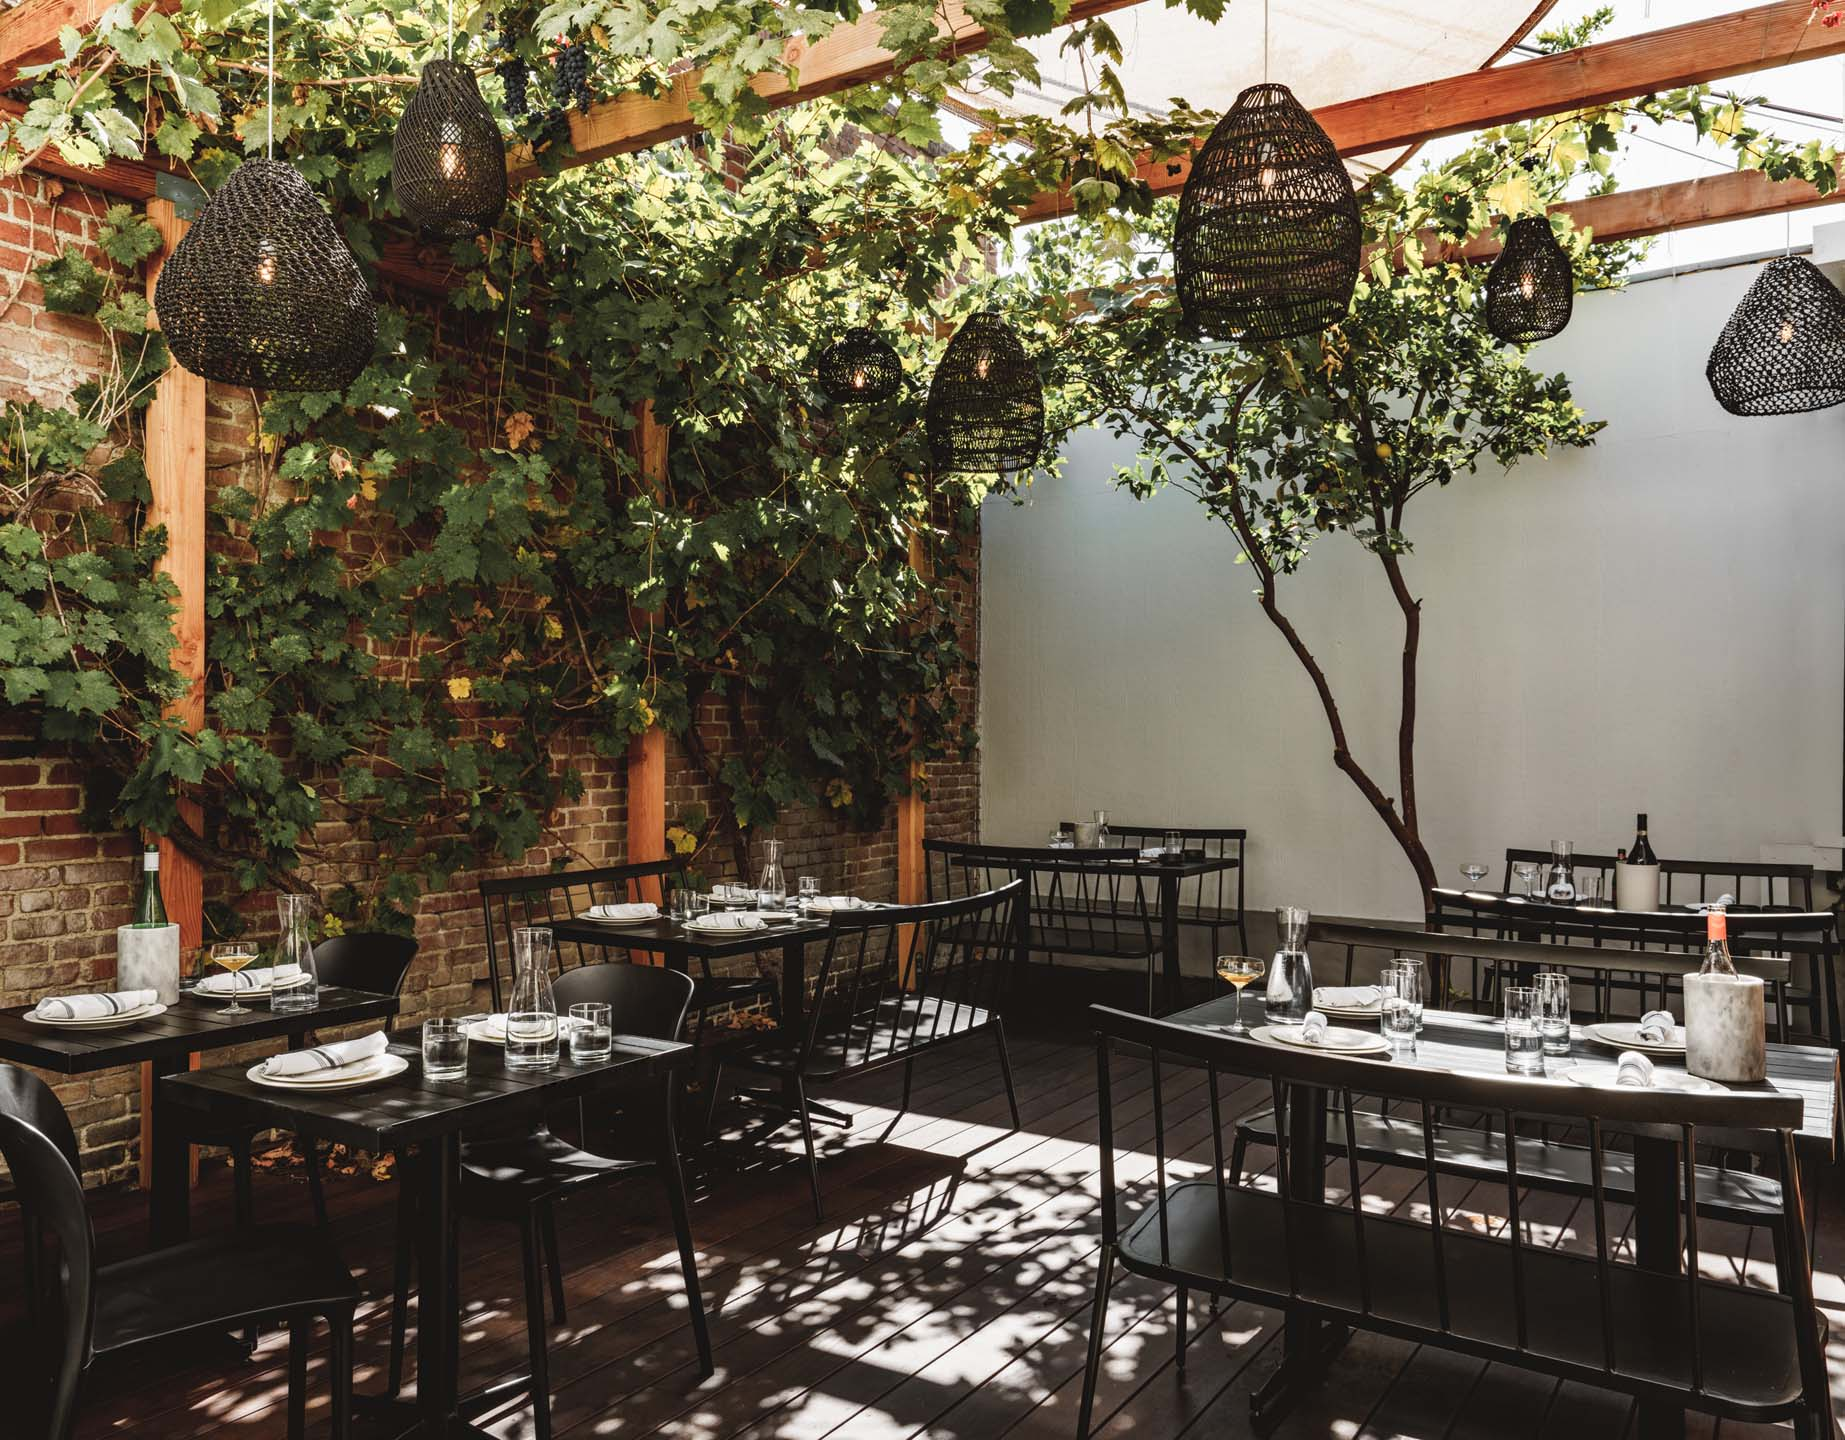 The back patio at Wife and the Somm showing the grapevines, tables and lemon tree.